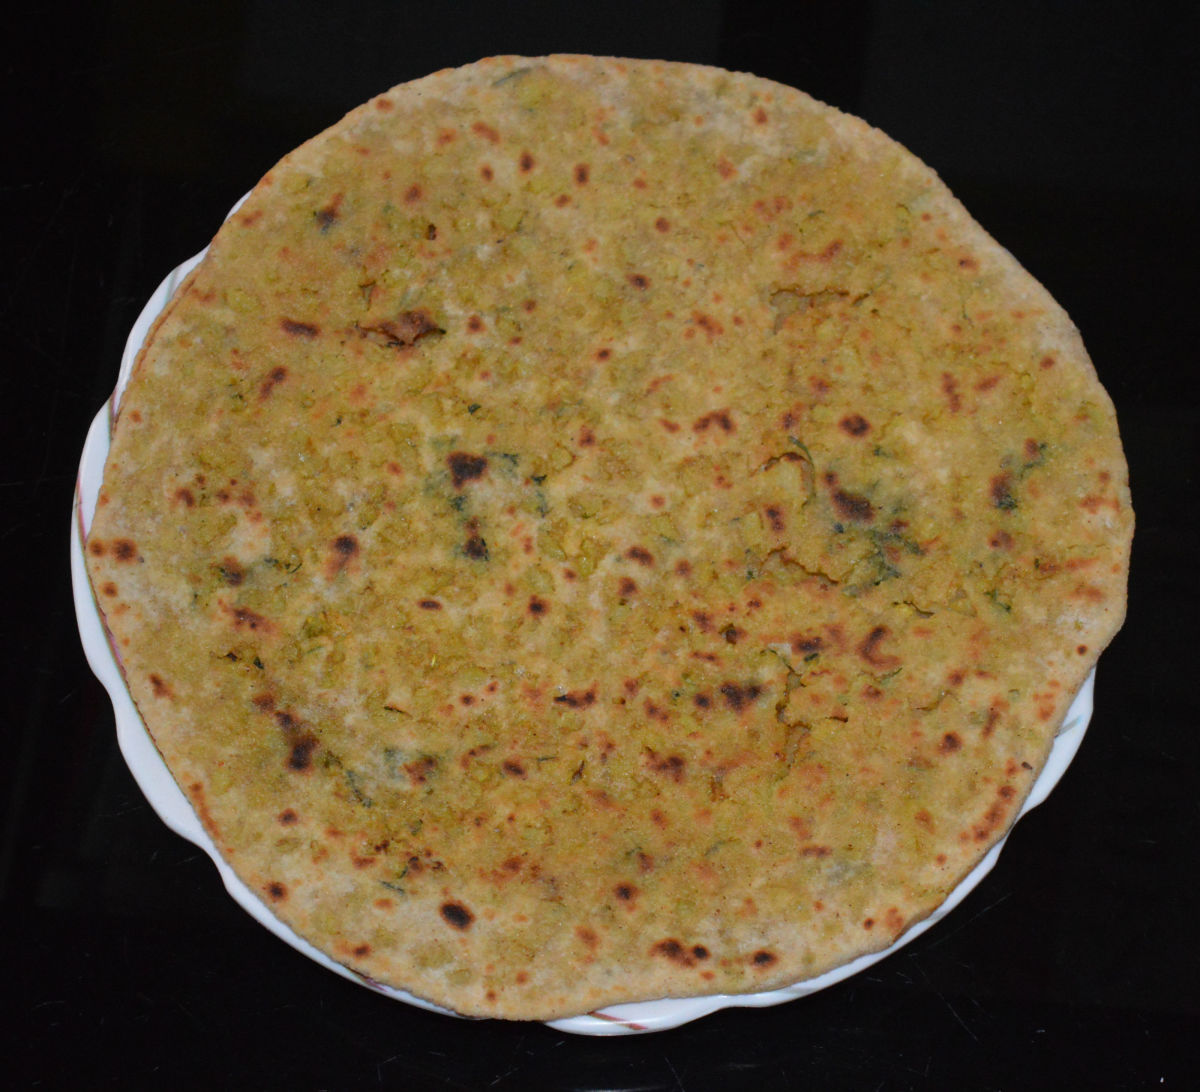 Cauliflower-Stuffed Indian Flatbread (Gobi Paratha) Recipe